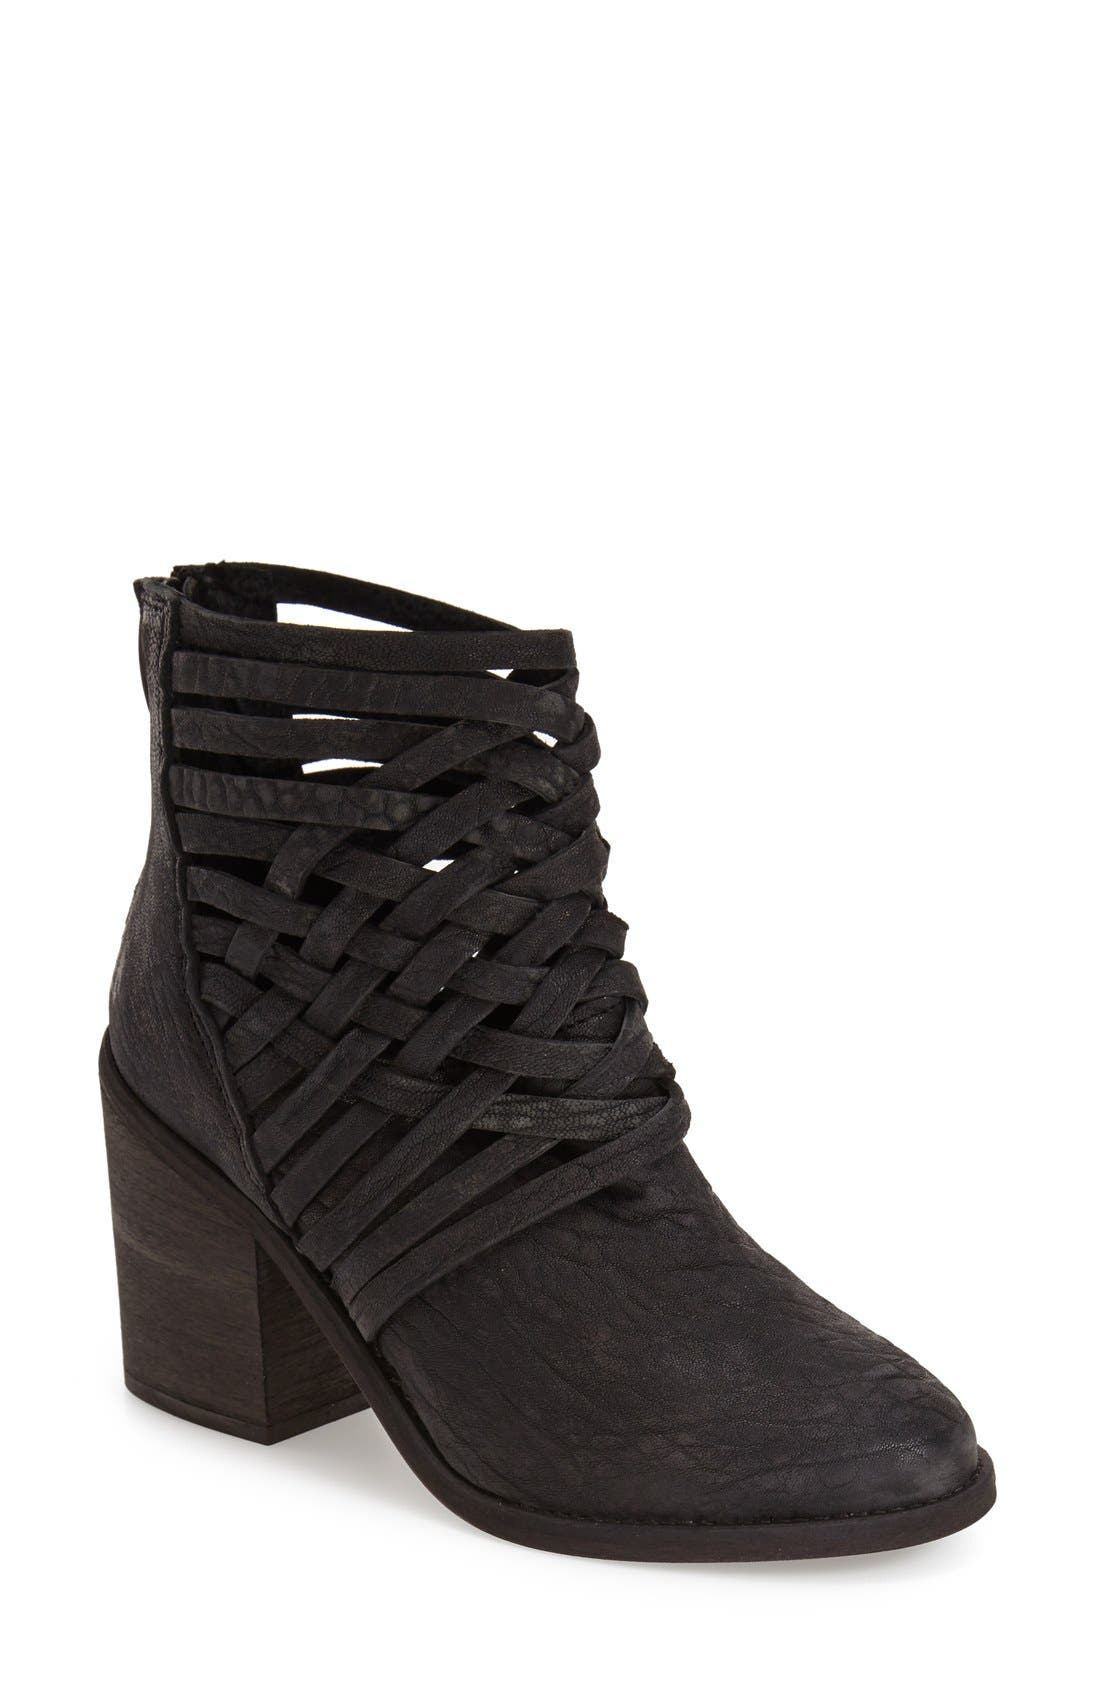 'Carrera' Bootie, Main, color, 001